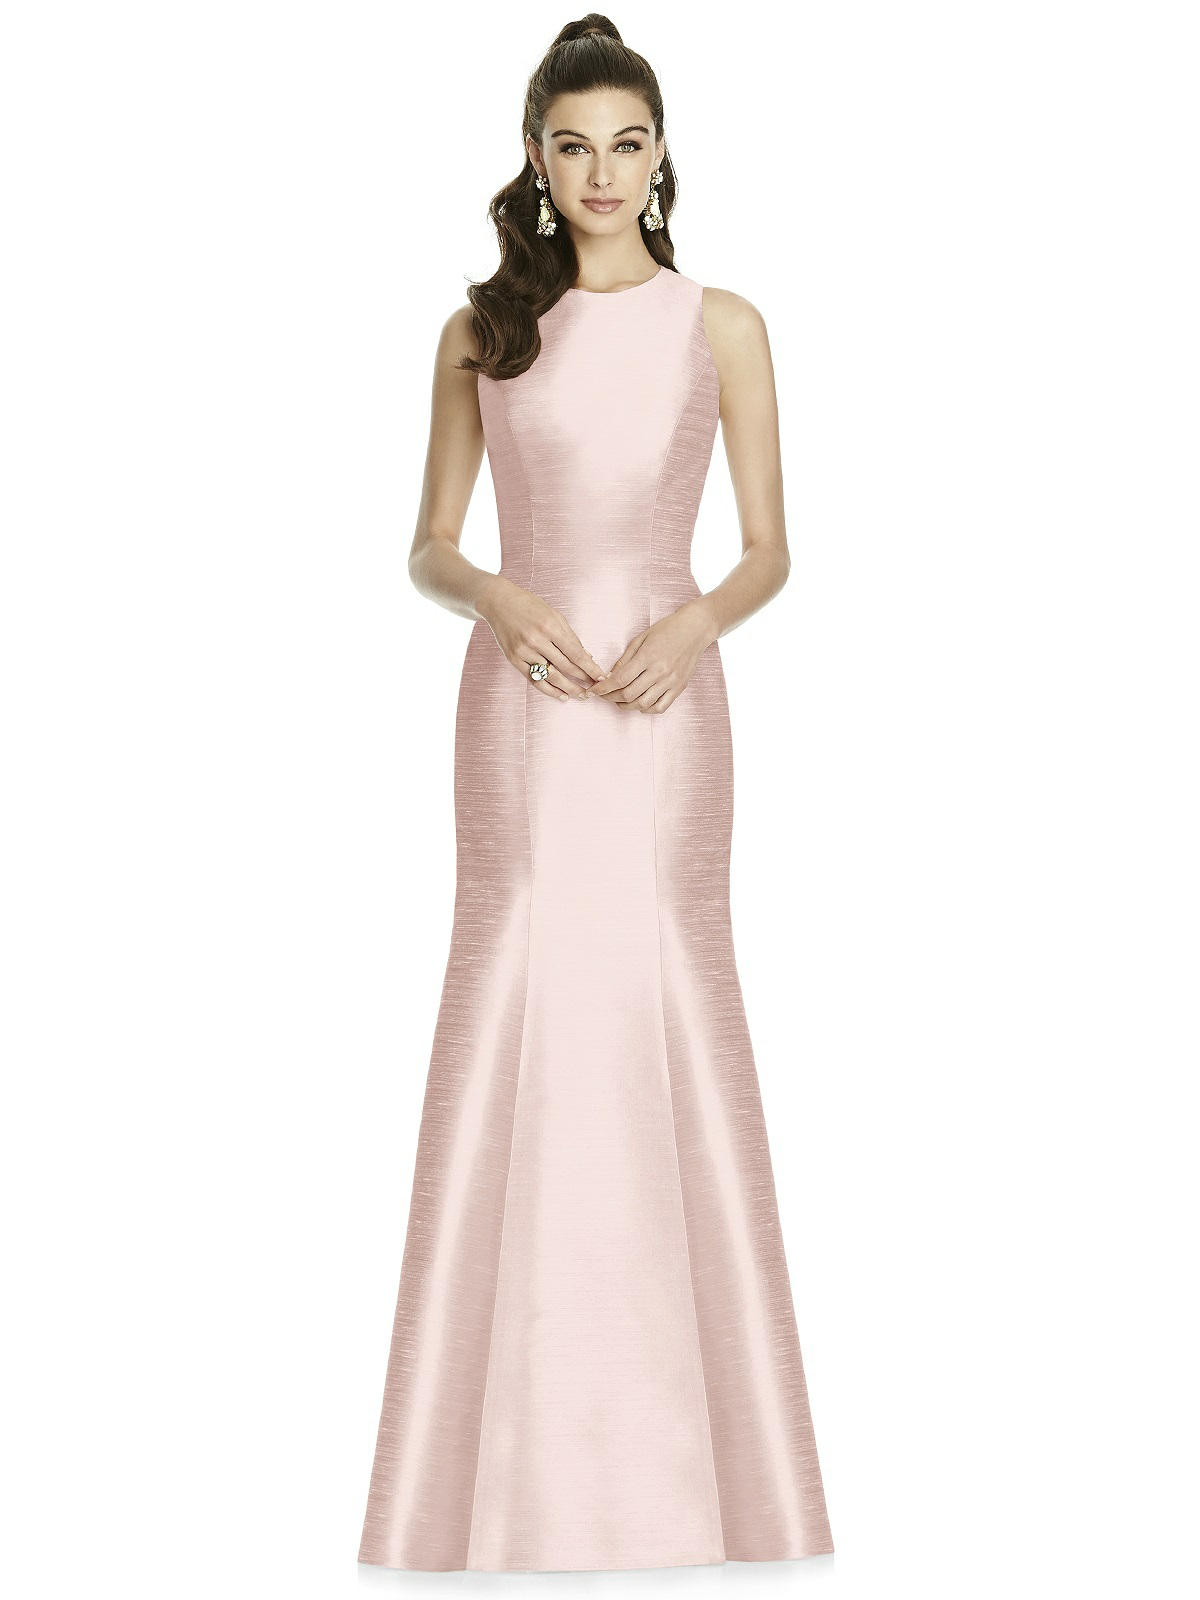 Alfred sung bridesmaid dresses prices images braidsmaid dress alfred sung d734 bridesmaid dress madamebridal ombrellifo images ombrellifo Choice Image